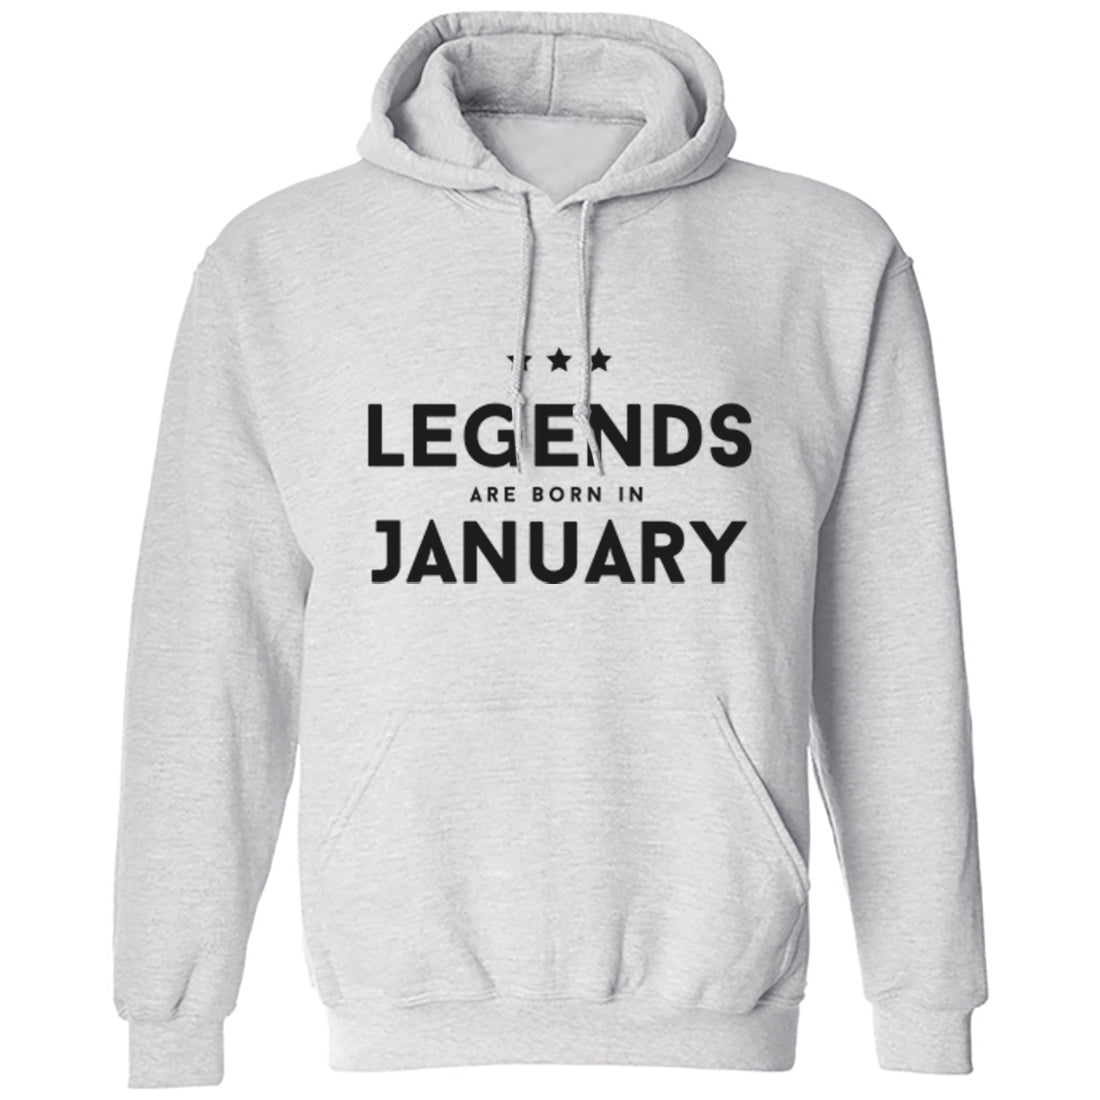 Legends Are Born In January Unisex Hoodie K1419 - Illustrated Identity Ltd.